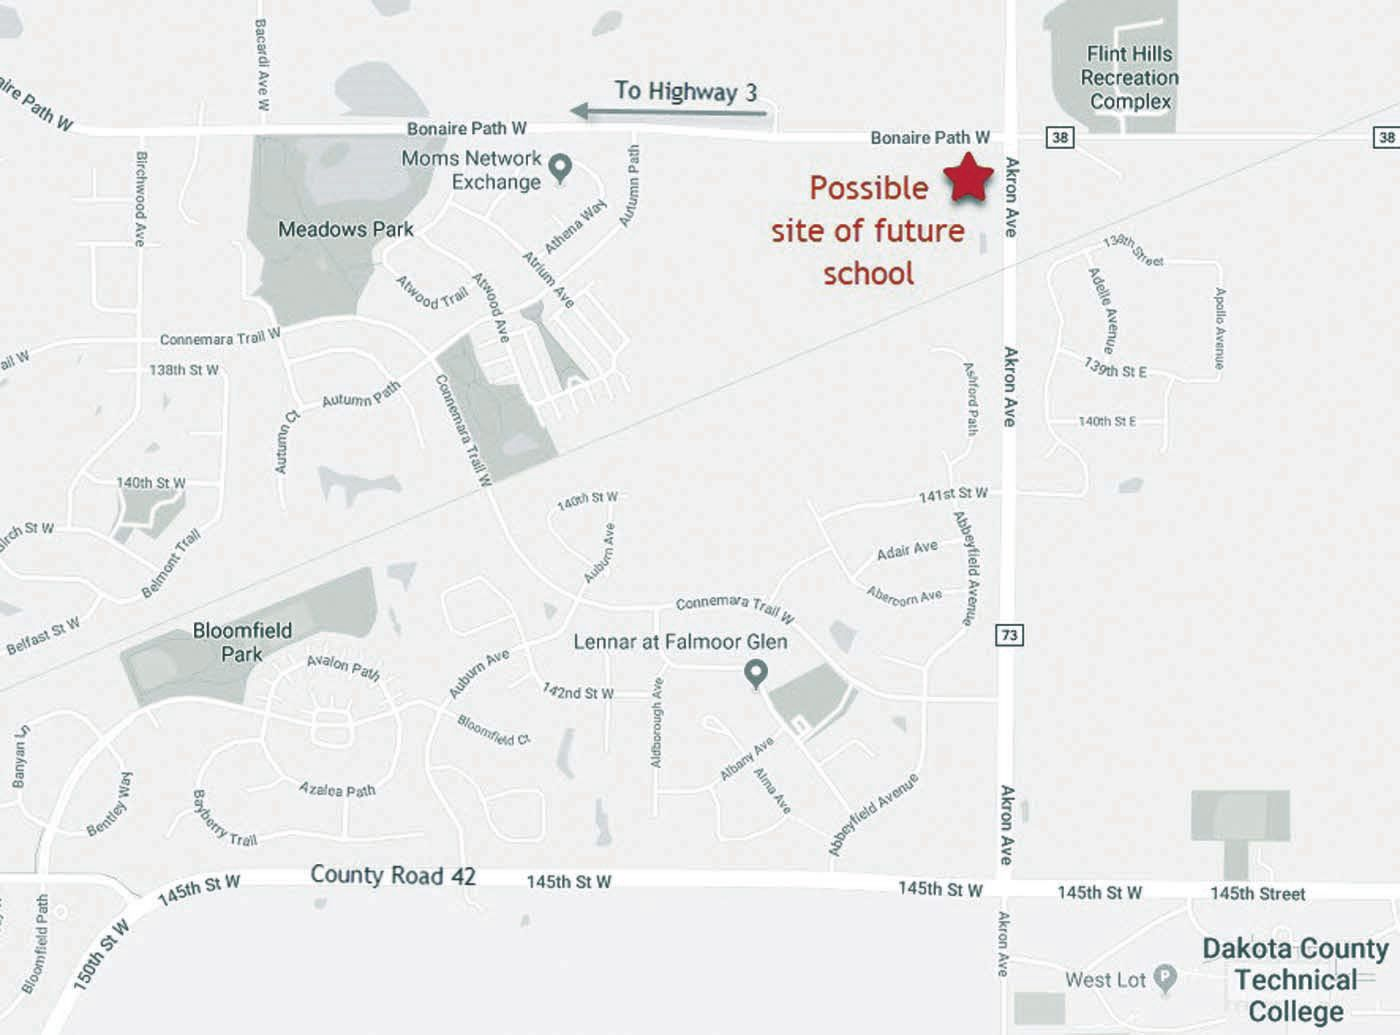 District 196 purchasing land for future school site